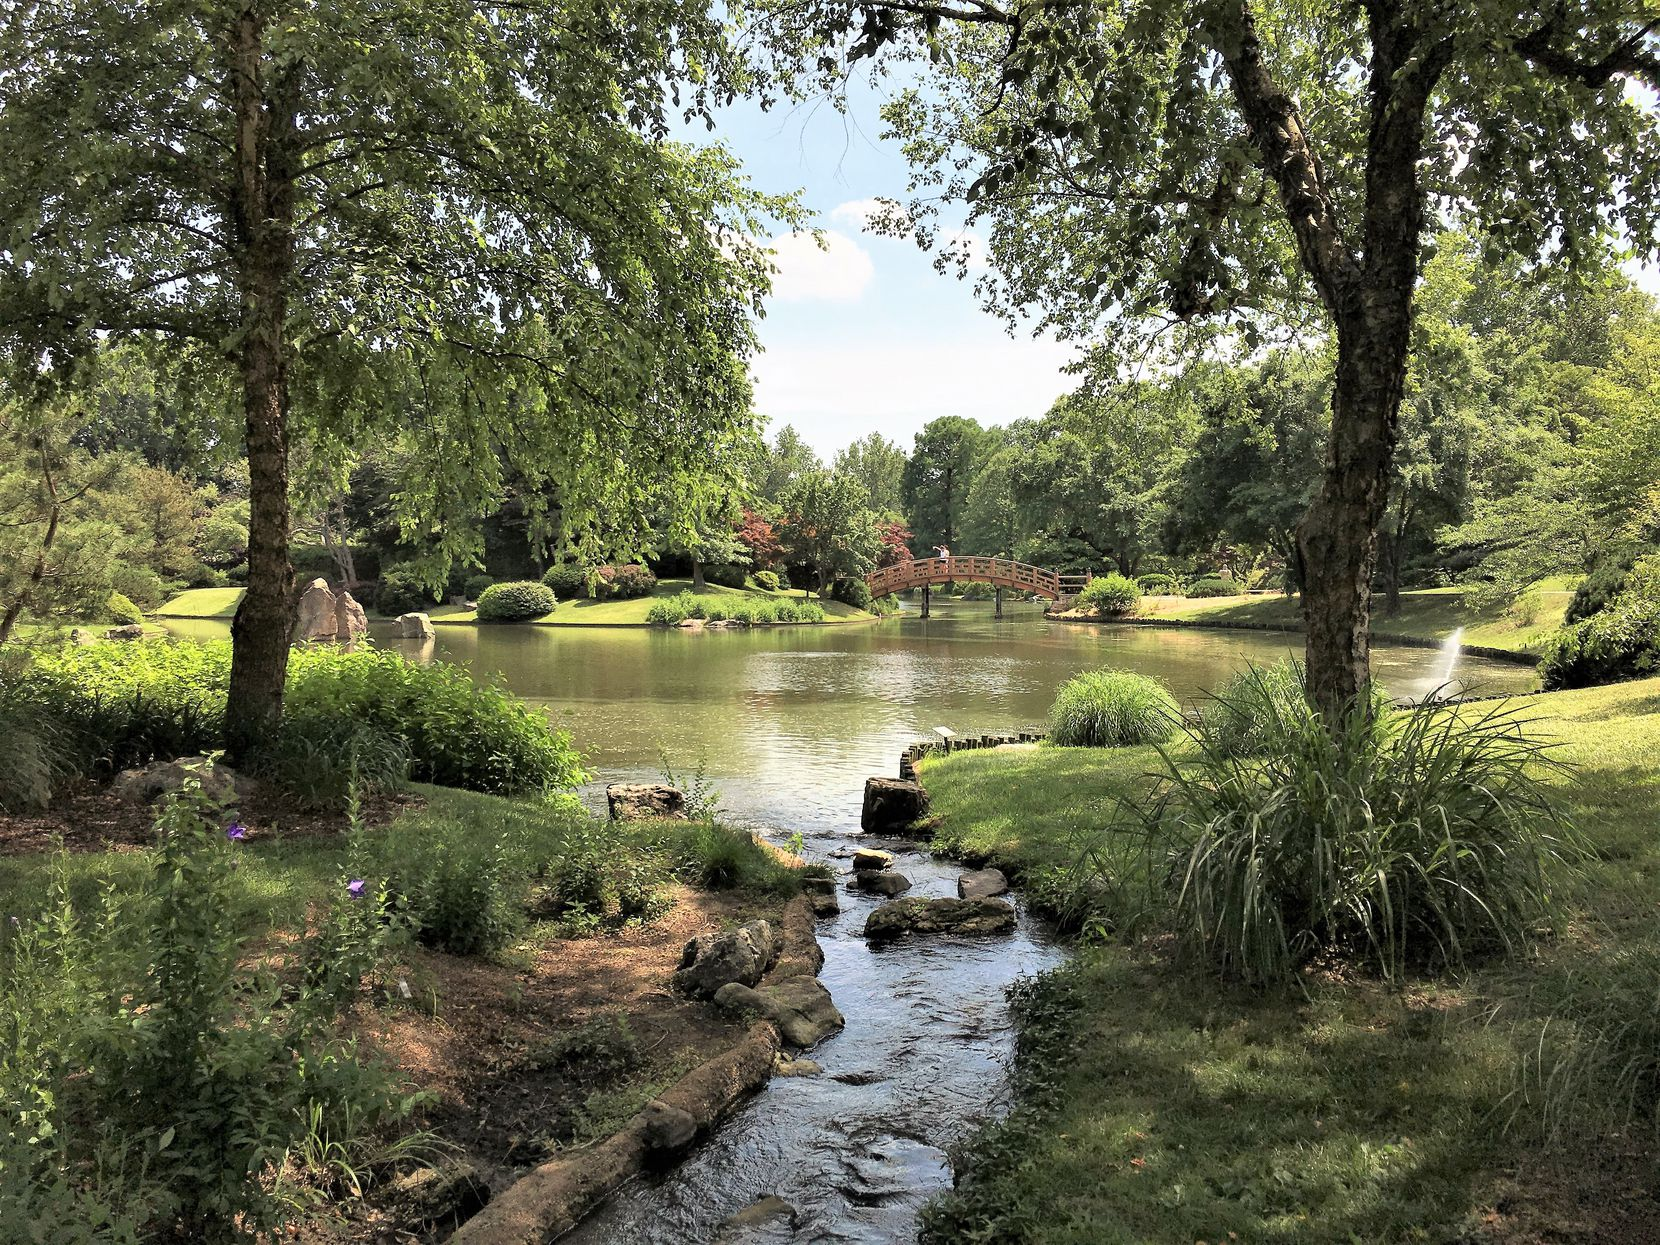 The Japanese Garden is a calming oasis at Missouri Botanical Garden in St. Louis.